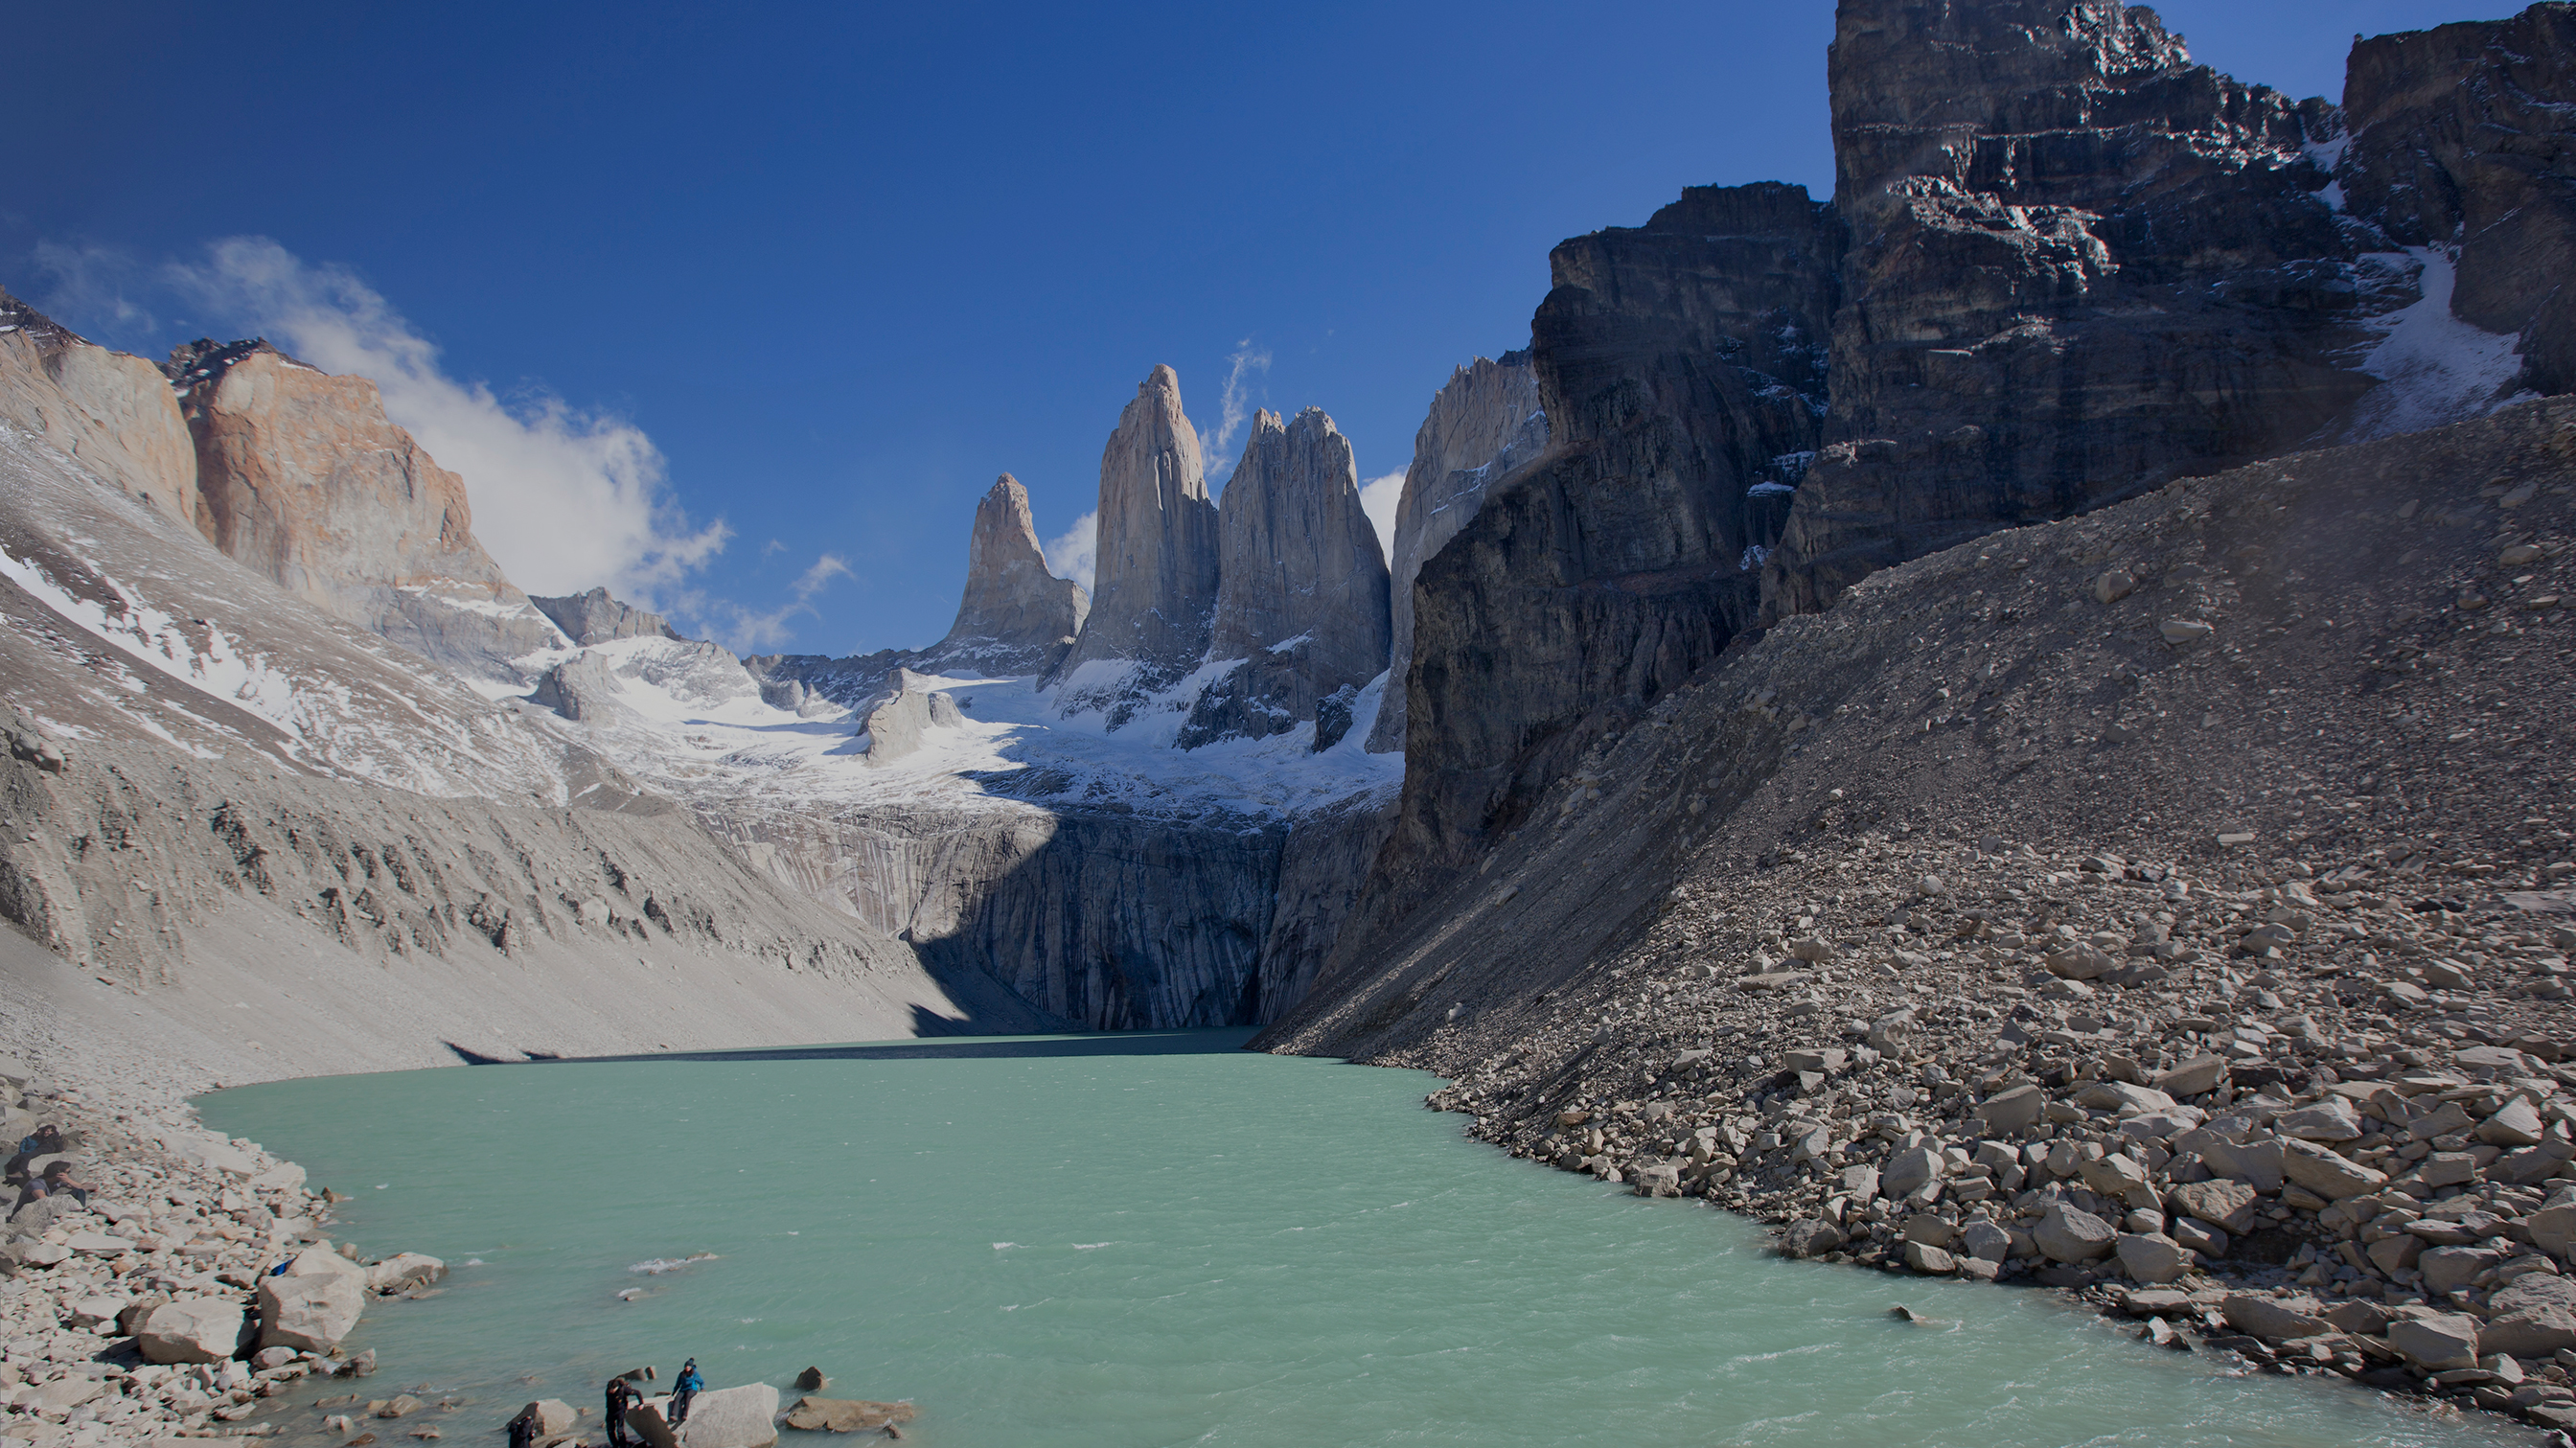 Patagonia South America >> Los Cuernos: The Horns of Patagonia - G Adventures